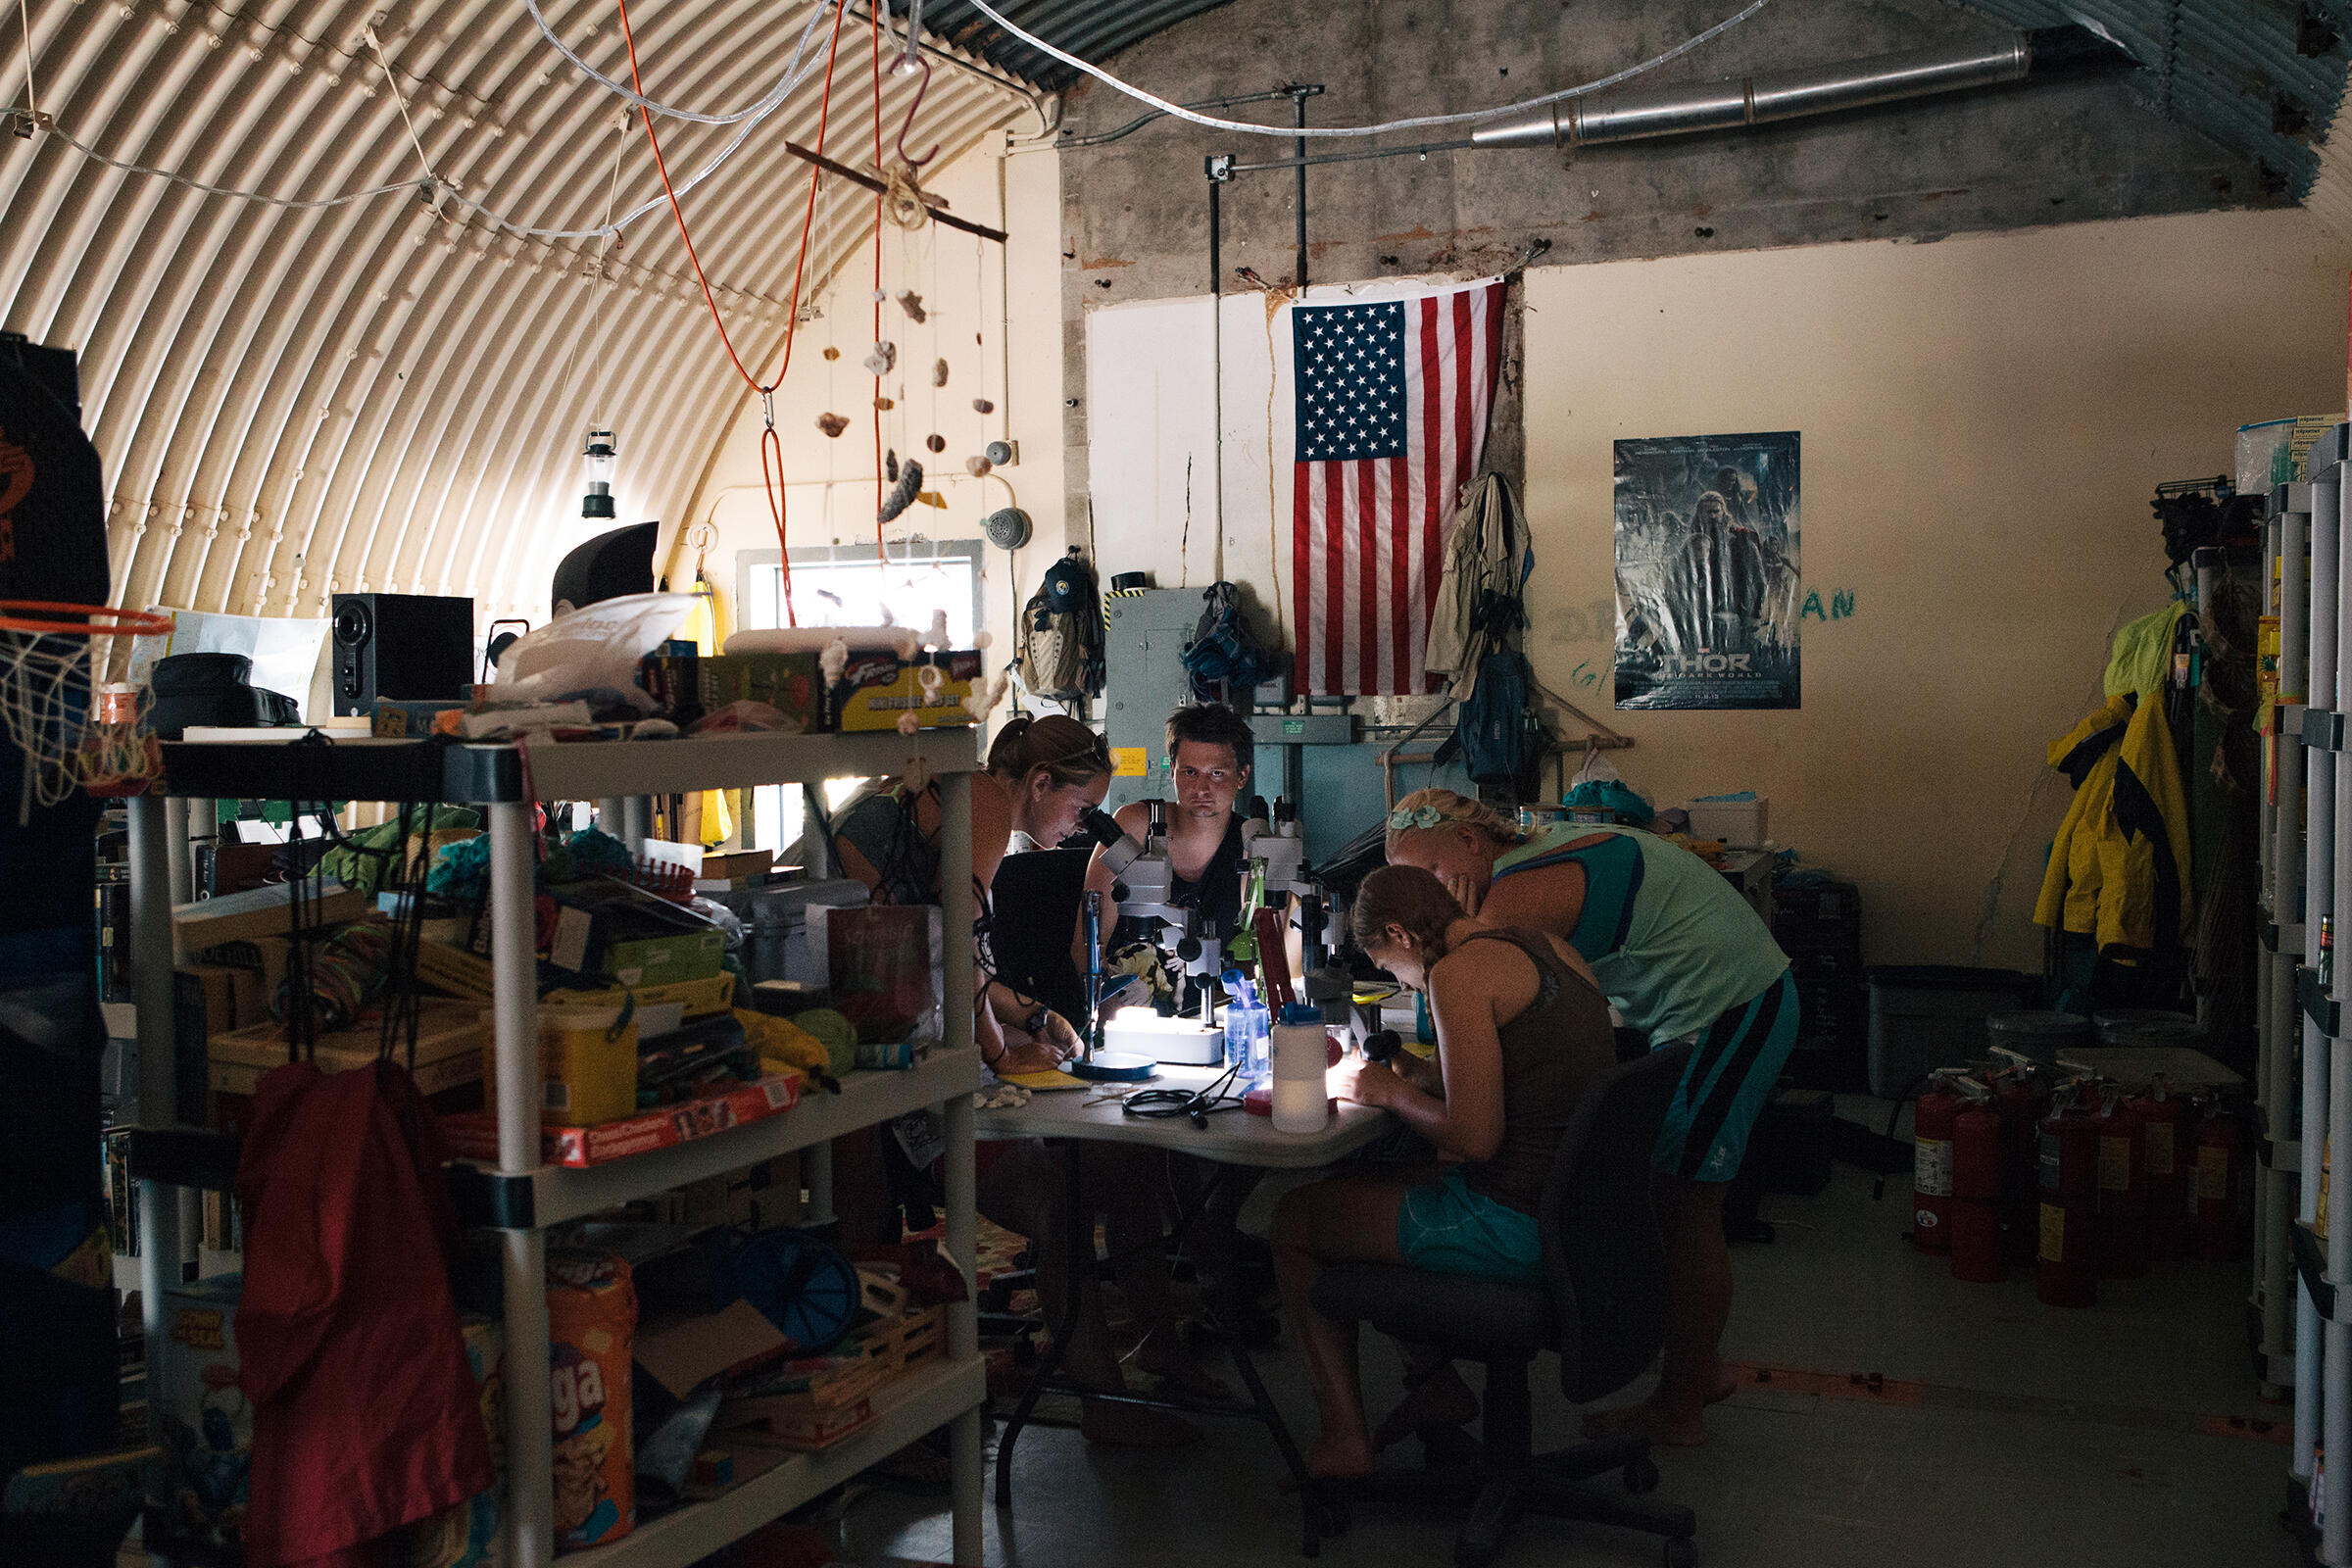 """Strike team members identify various ant species in the """"Ant Cave,"""" a repurposed bunker that now serves as a library, laboratory, kitchen, and pantry. Tristan Spinski"""